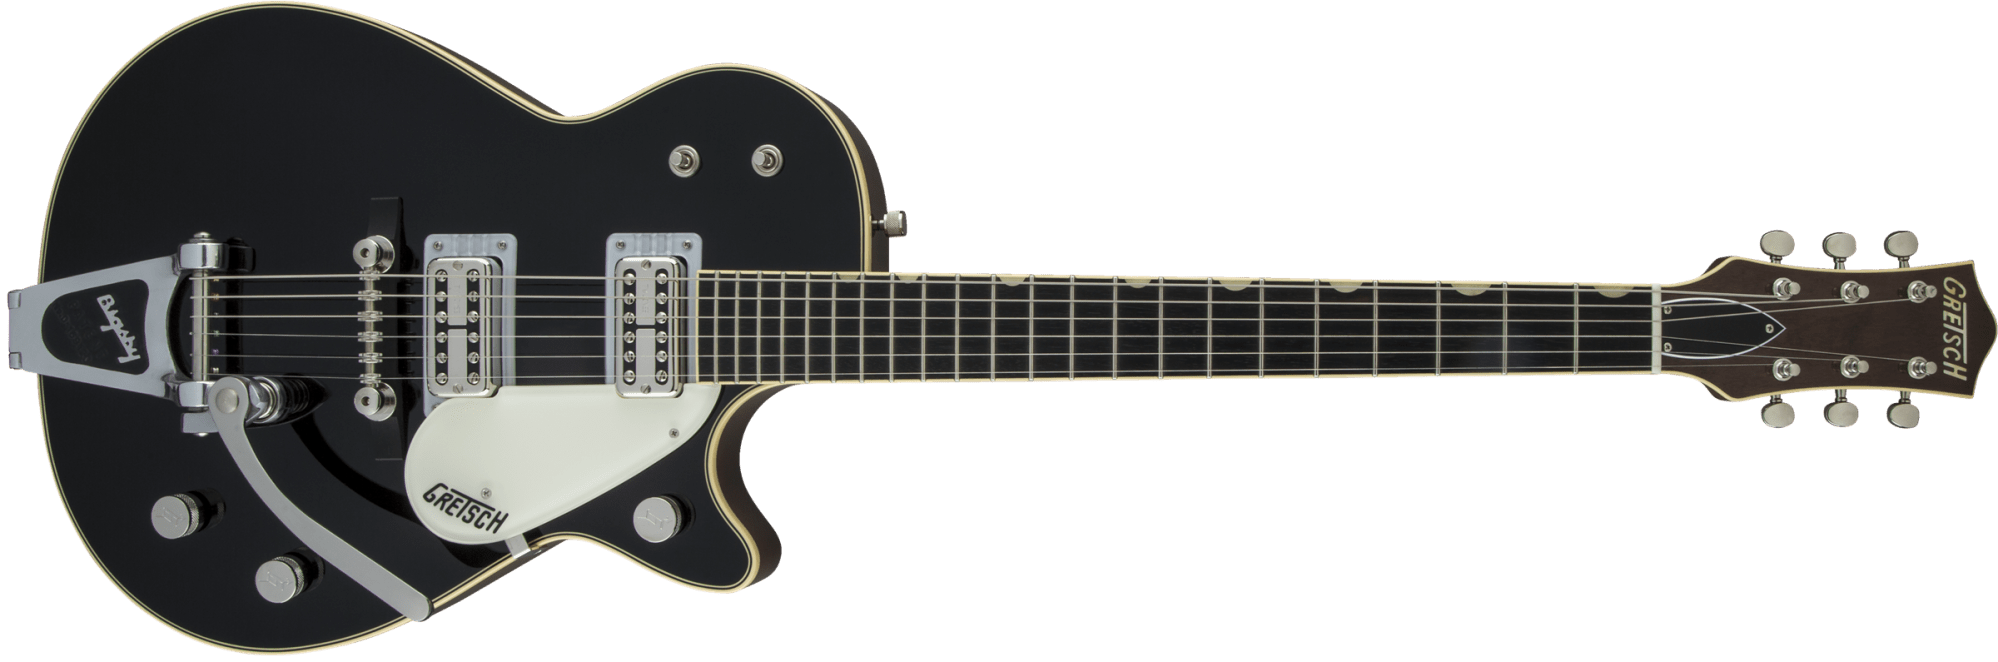 hight resolution of jackson guitar wiring wiring wiring diagrams instructions source fancy yamaha b rbx 70 wiring diagram